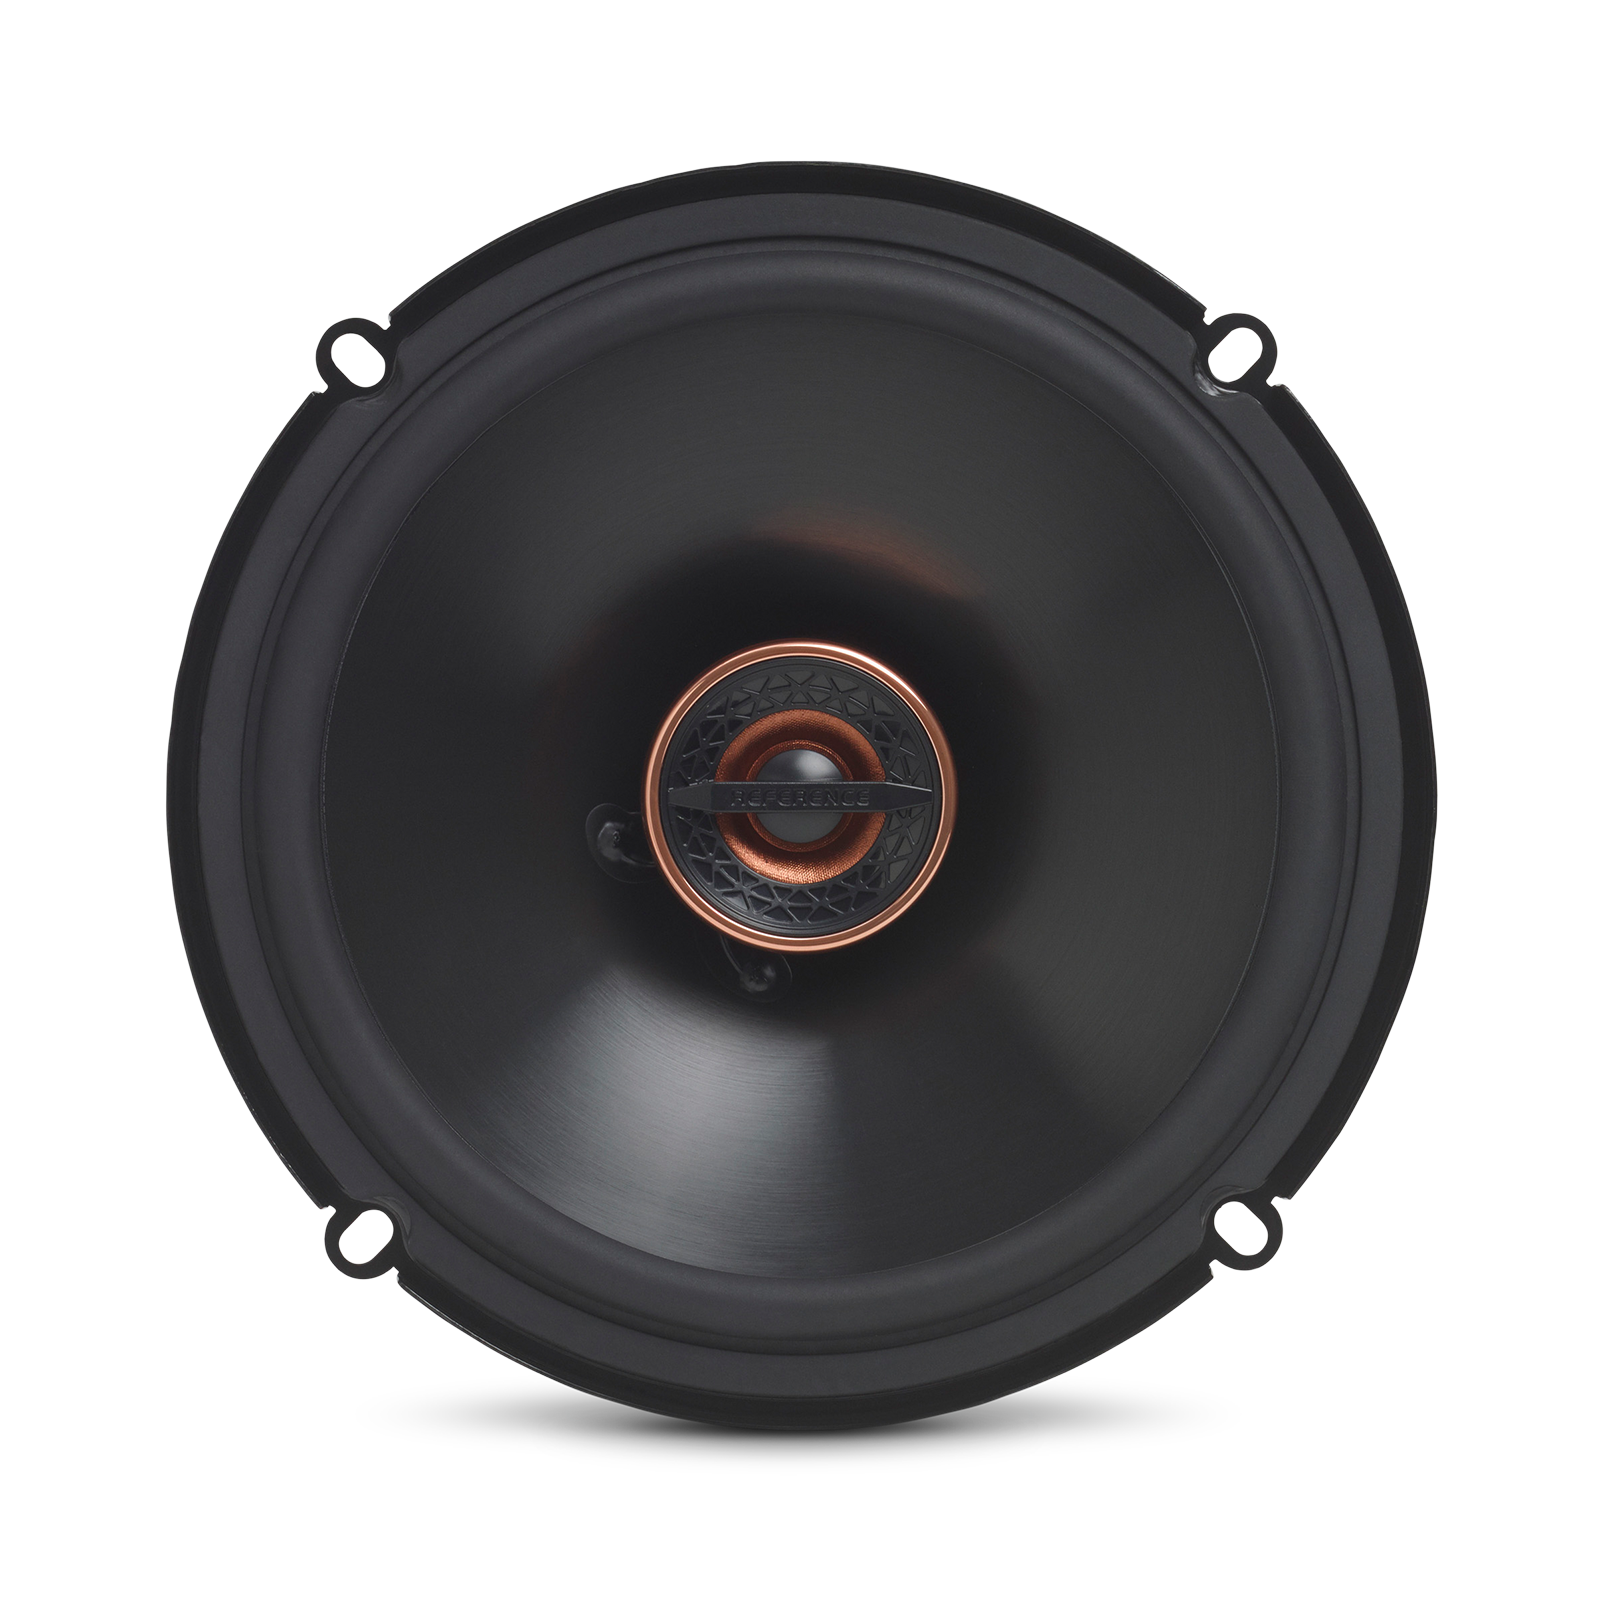 """Reference 6532ex - Black - 6-1/2"""" (160mm) shallow-mount coaxial car speaker, 165W - Detailshot 1"""